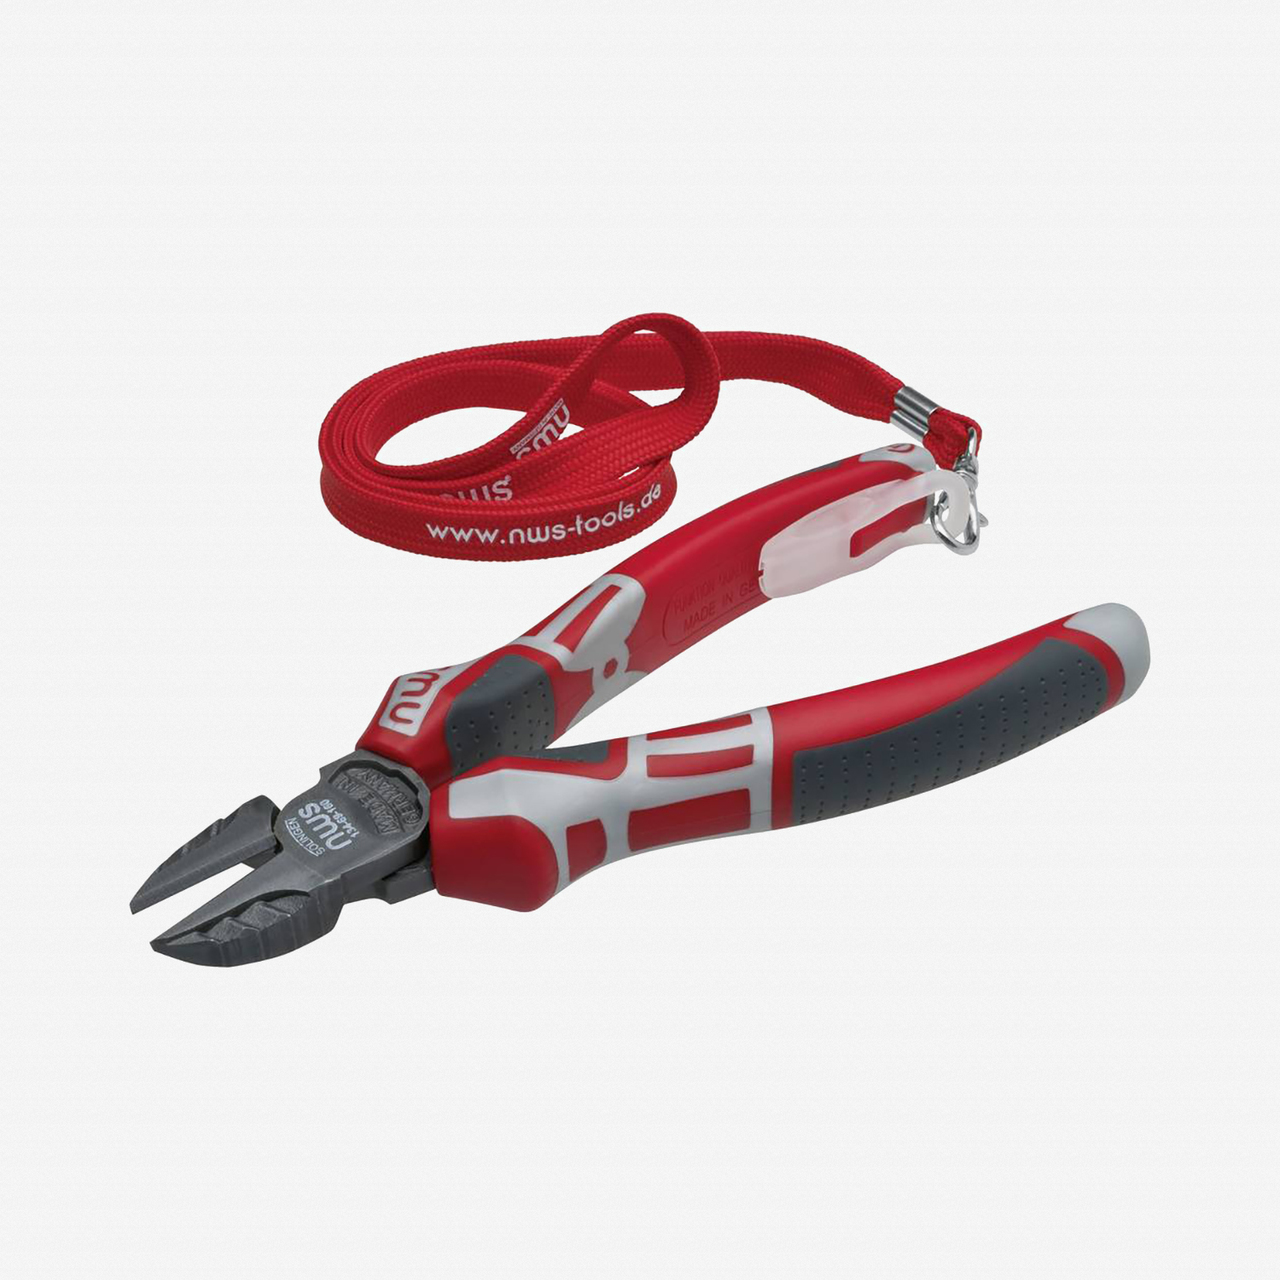 "NWS 819-1 System Clip with Lanyard, 17.75"" - KC Tool"